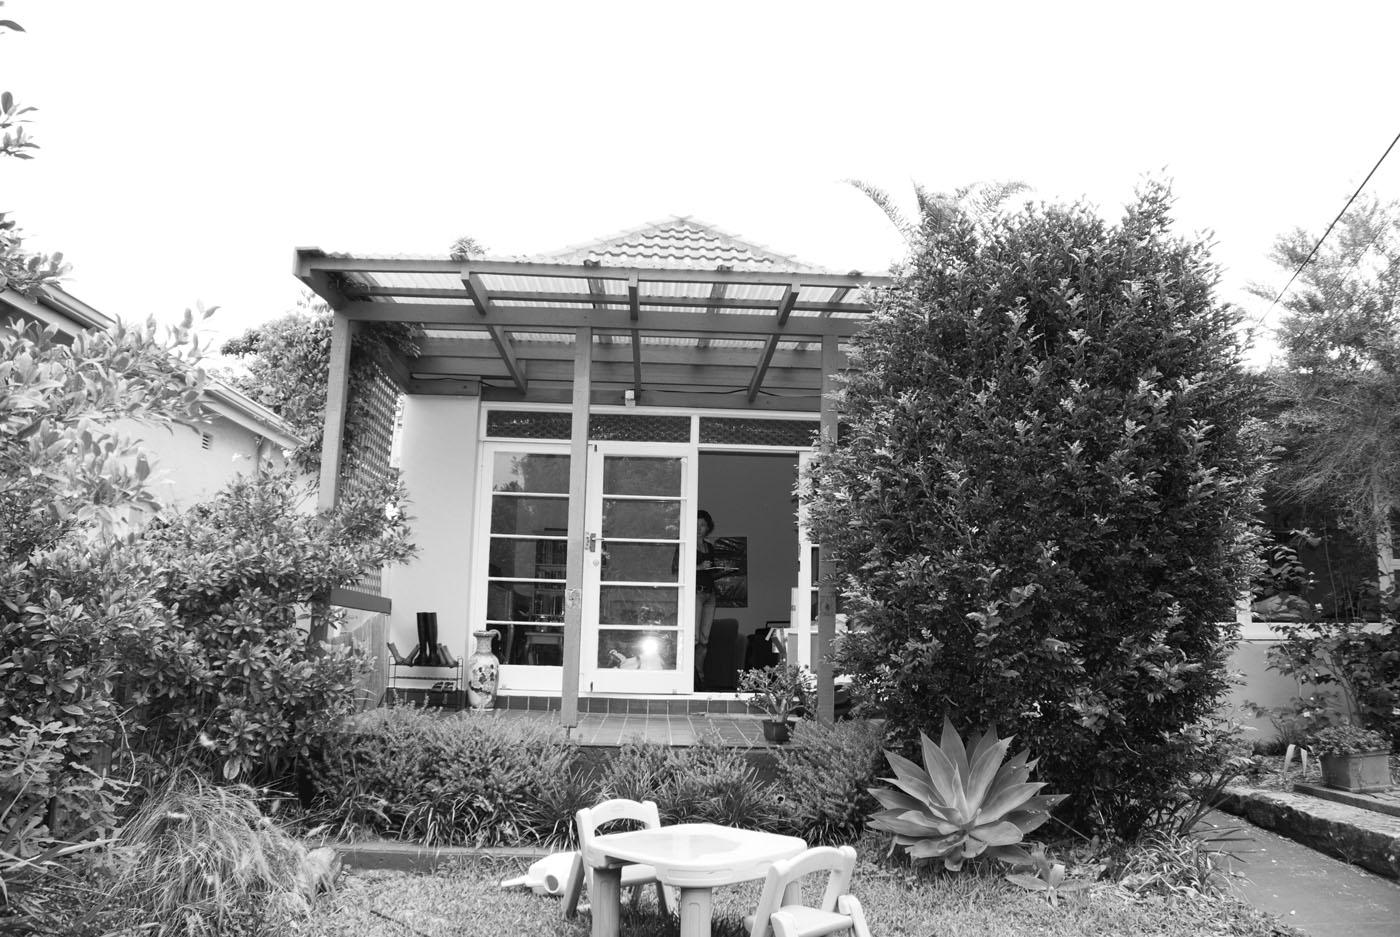 Campbell House by award winning Sydney residential architecture firm Sam Crawford Architects. Image of the existing house